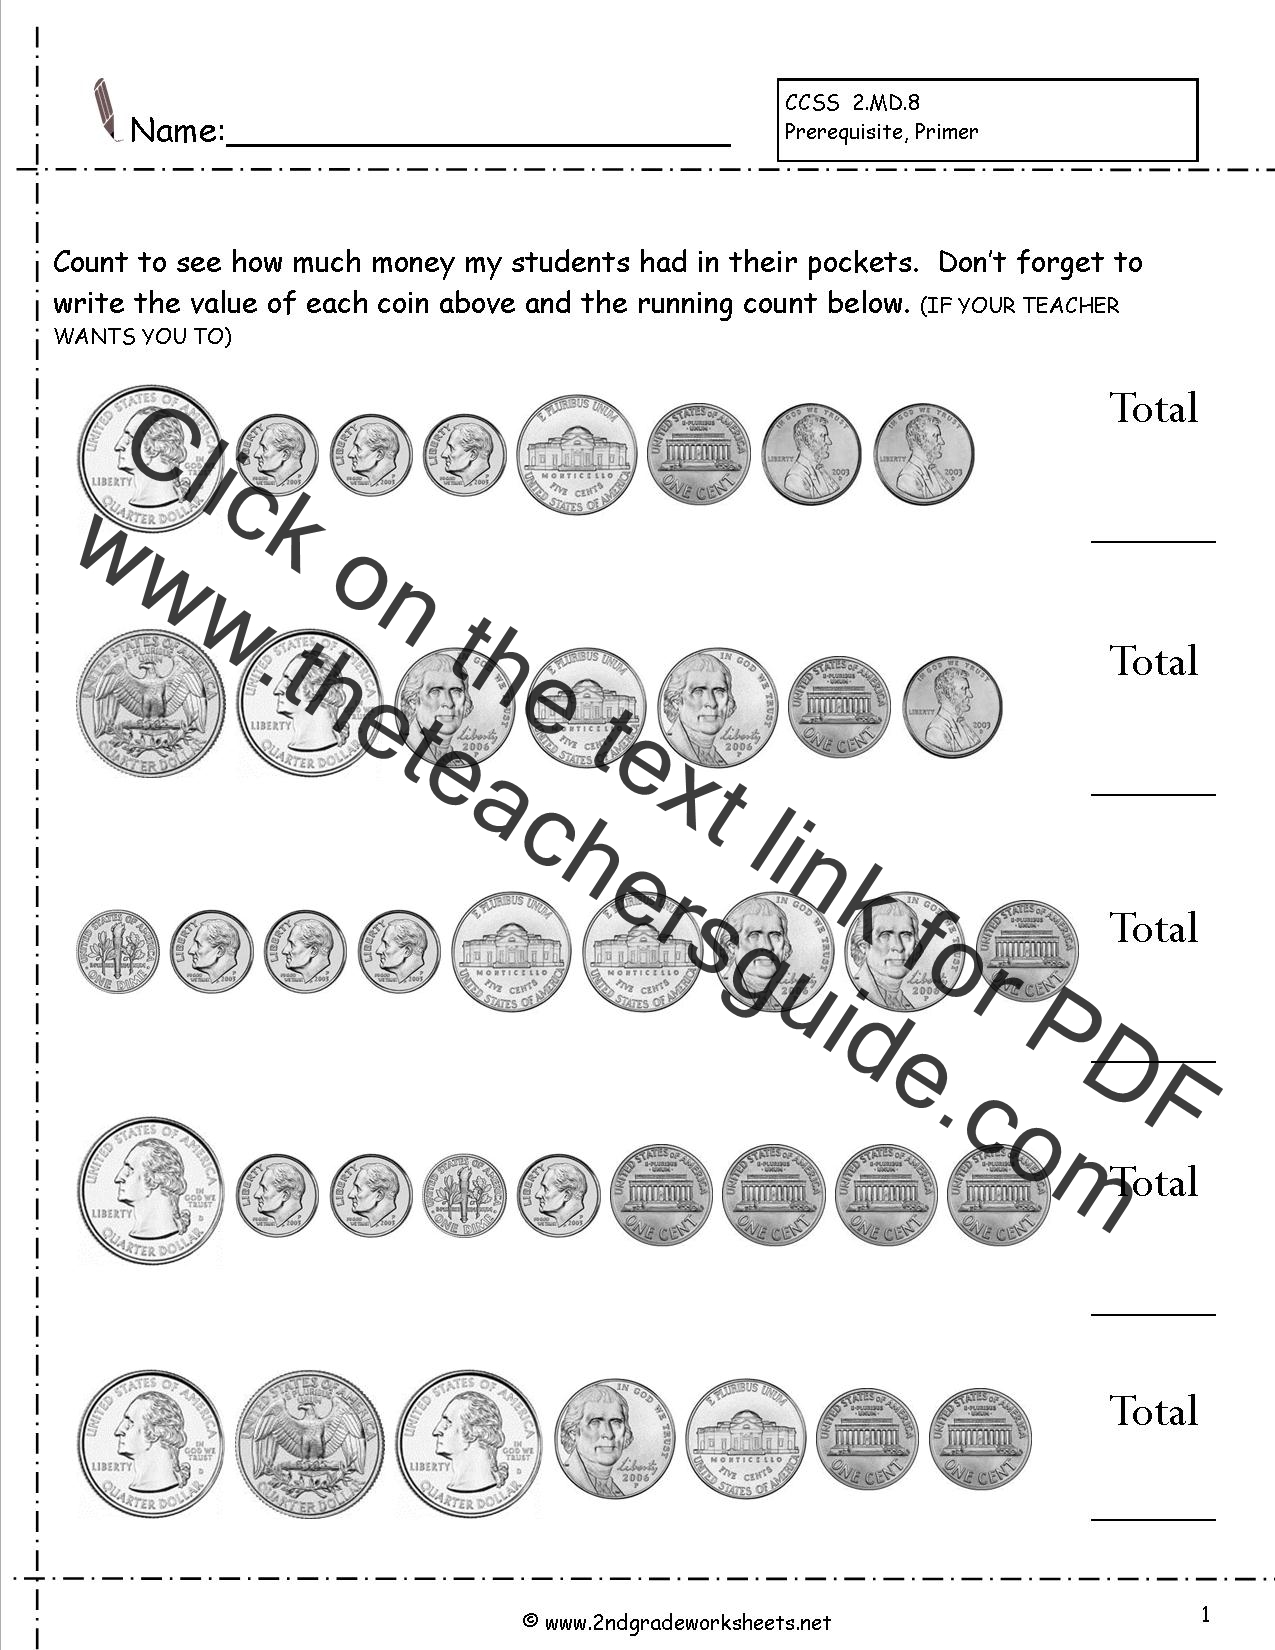 Grade 3 Counting Money Worksheets - free &- printable | K5 Learning